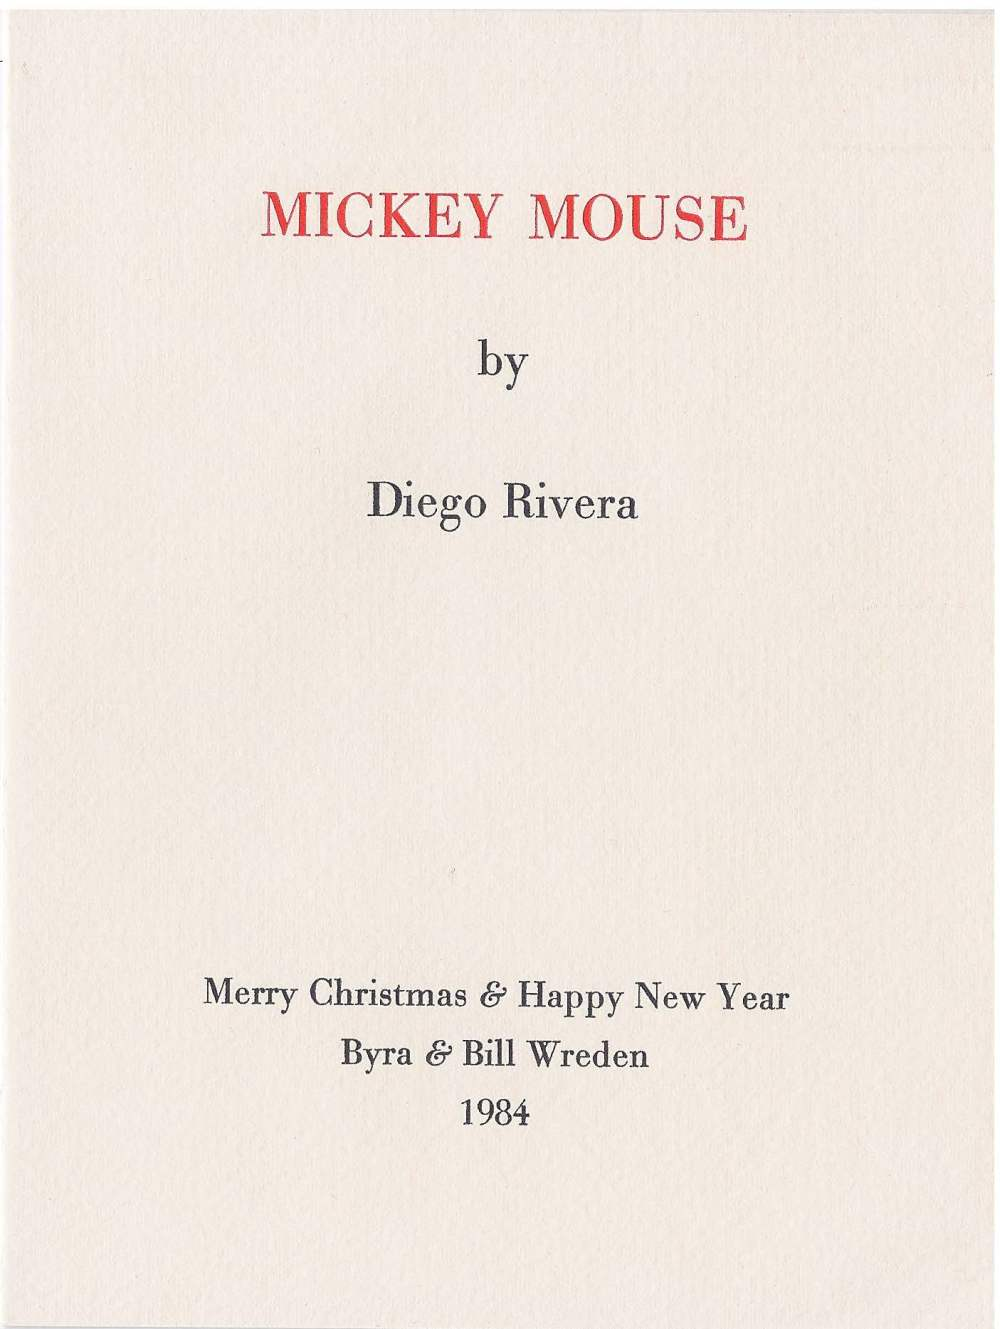 mickeymousecover